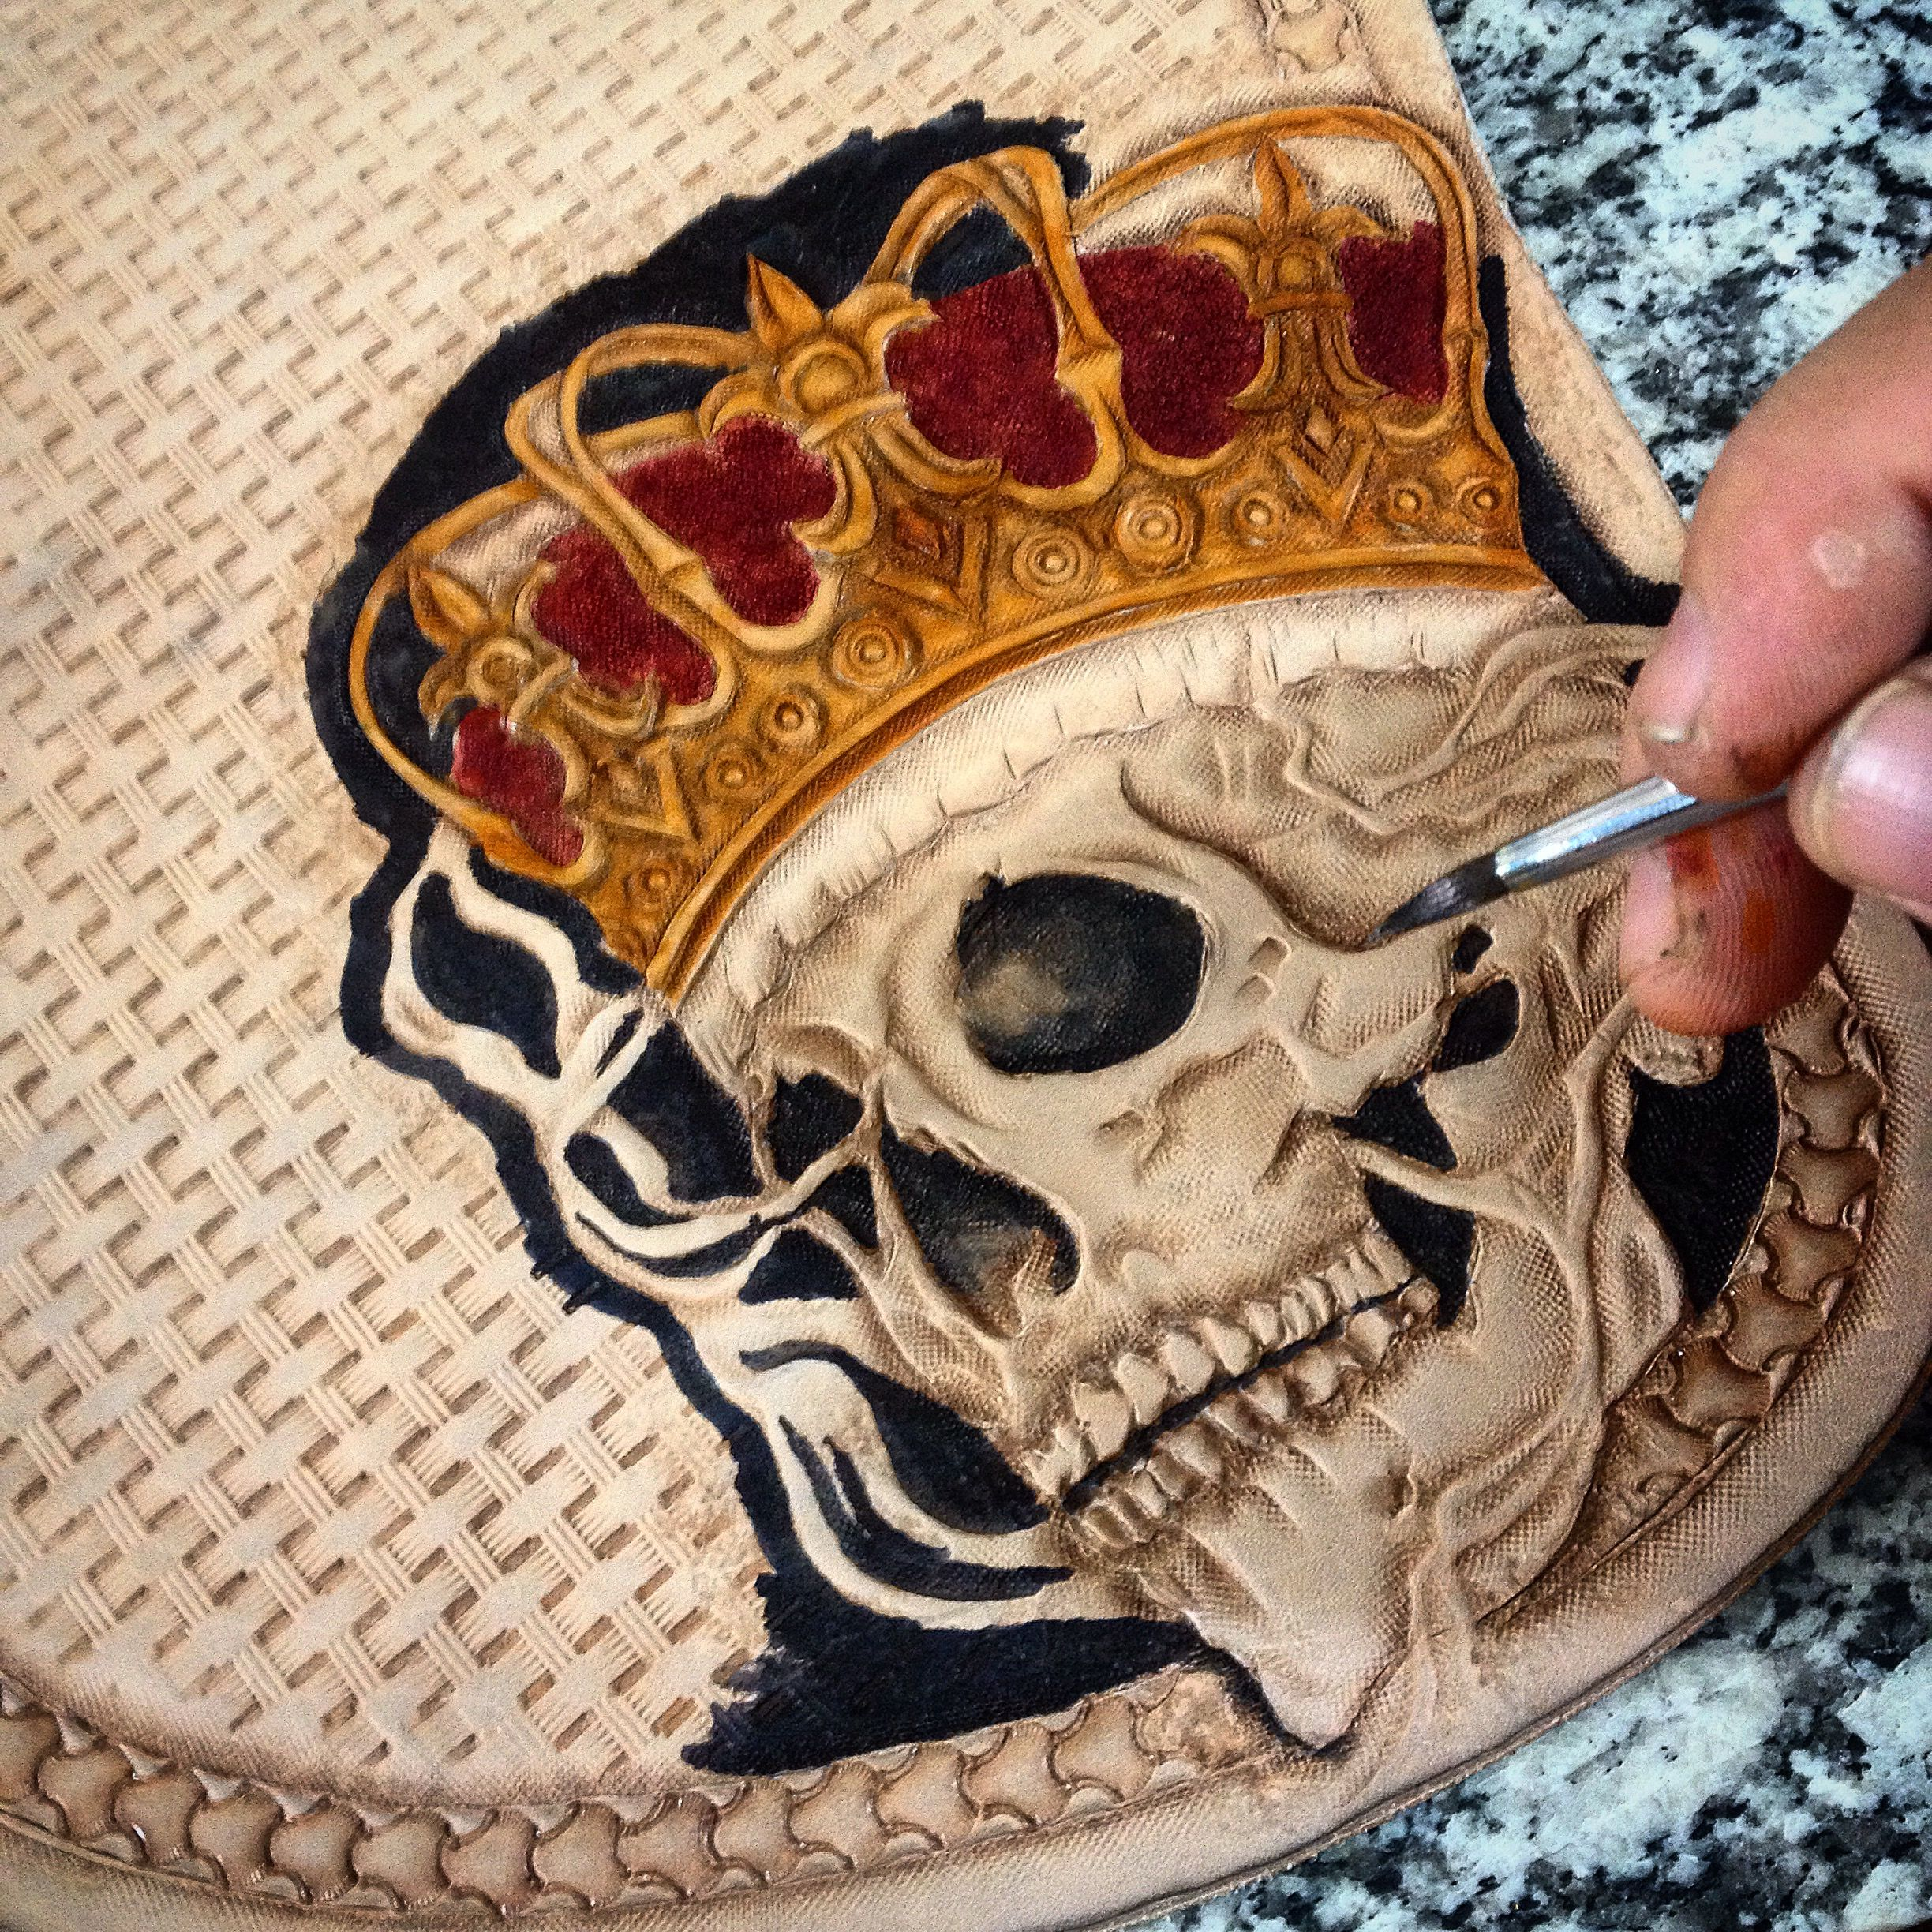 Leather carving tipoeubolsas